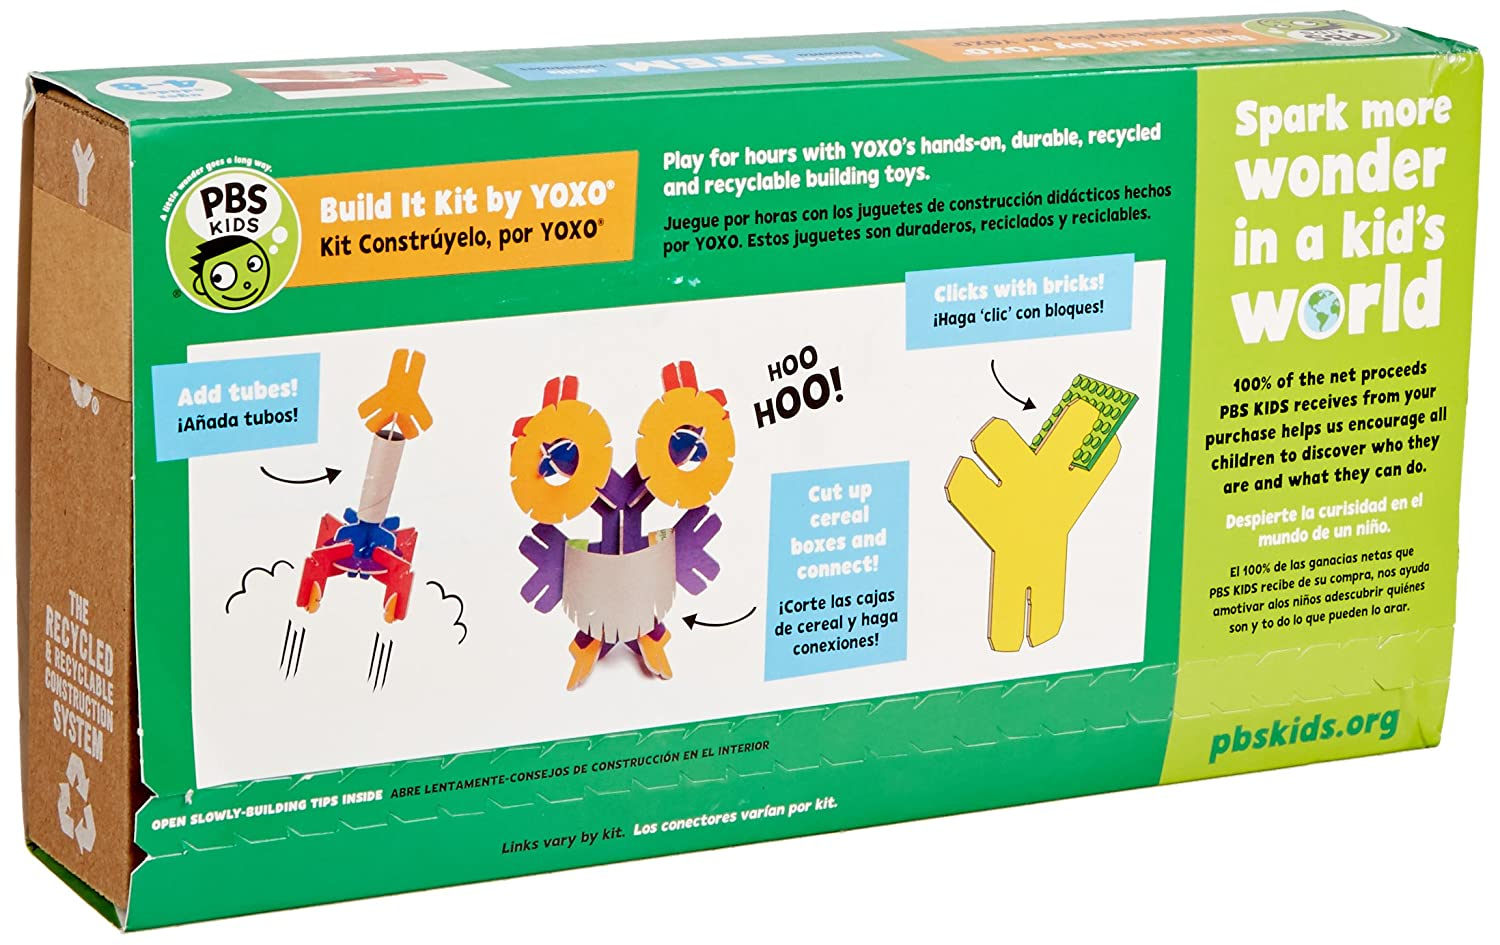 Amazon.com: PBS KIDS Build It Kit by YOXO - 30 Piece Creative Building Toy: Toys & Games